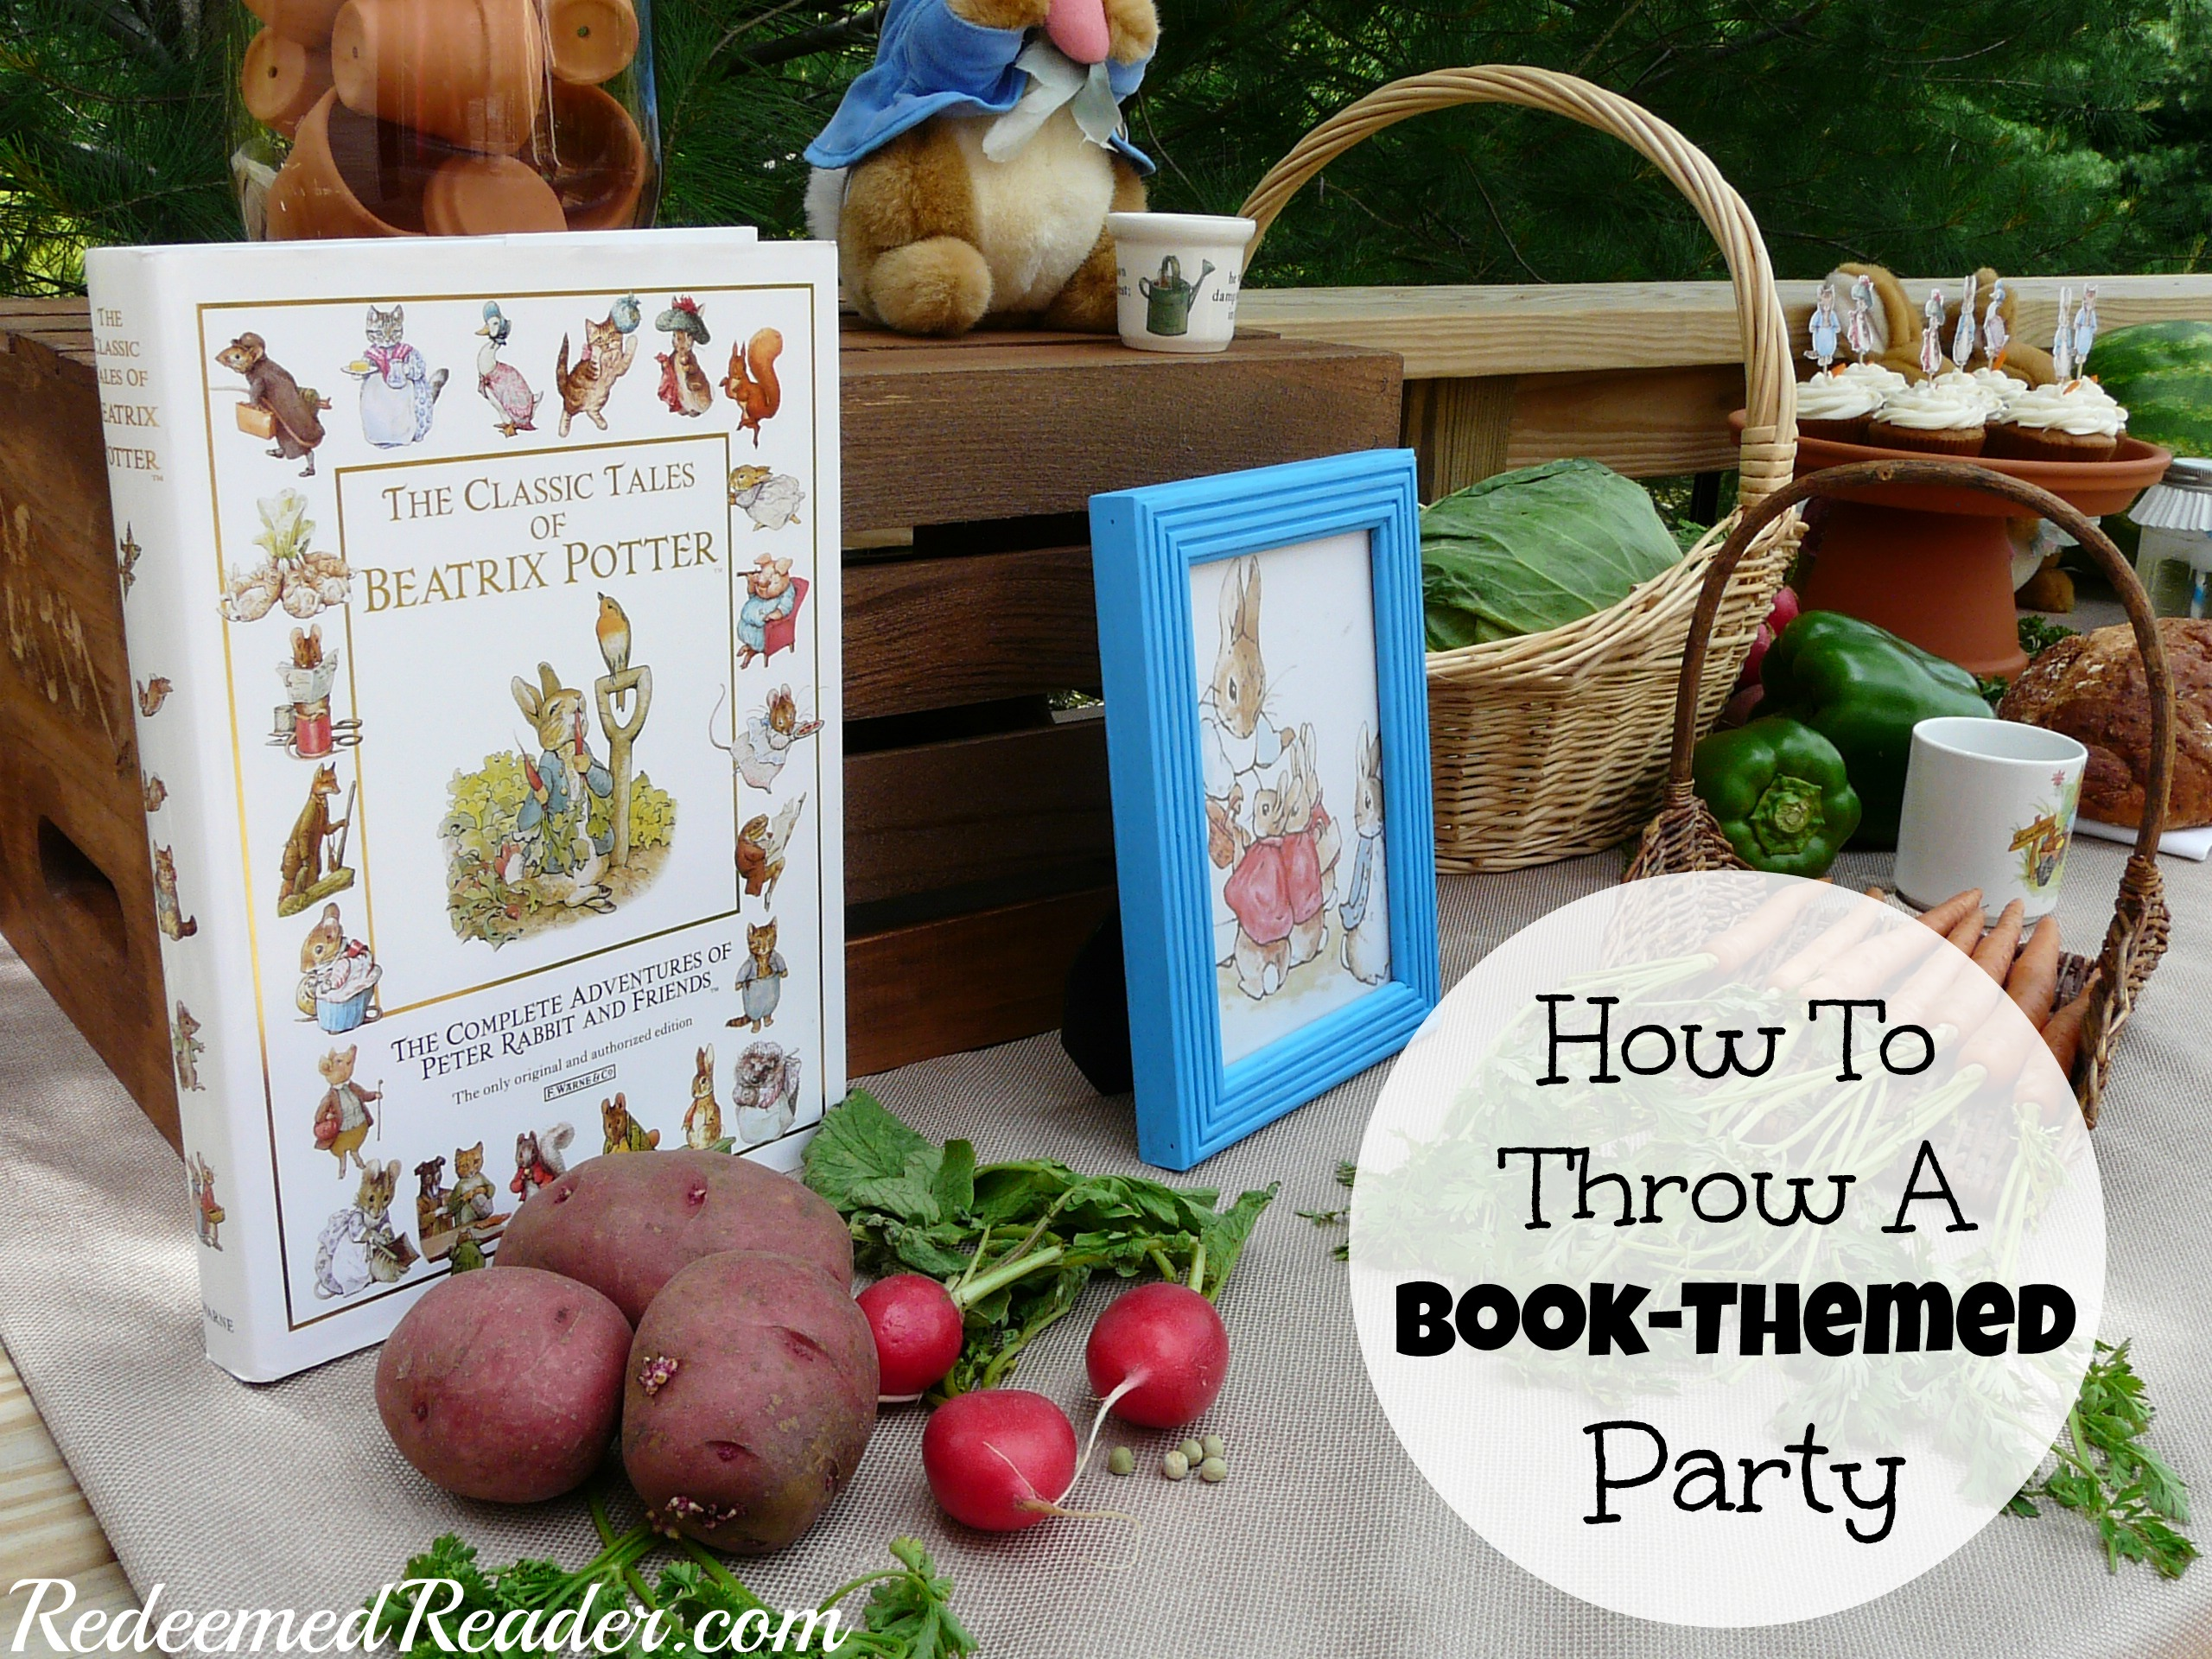 How to Throw a Book-Themed Party